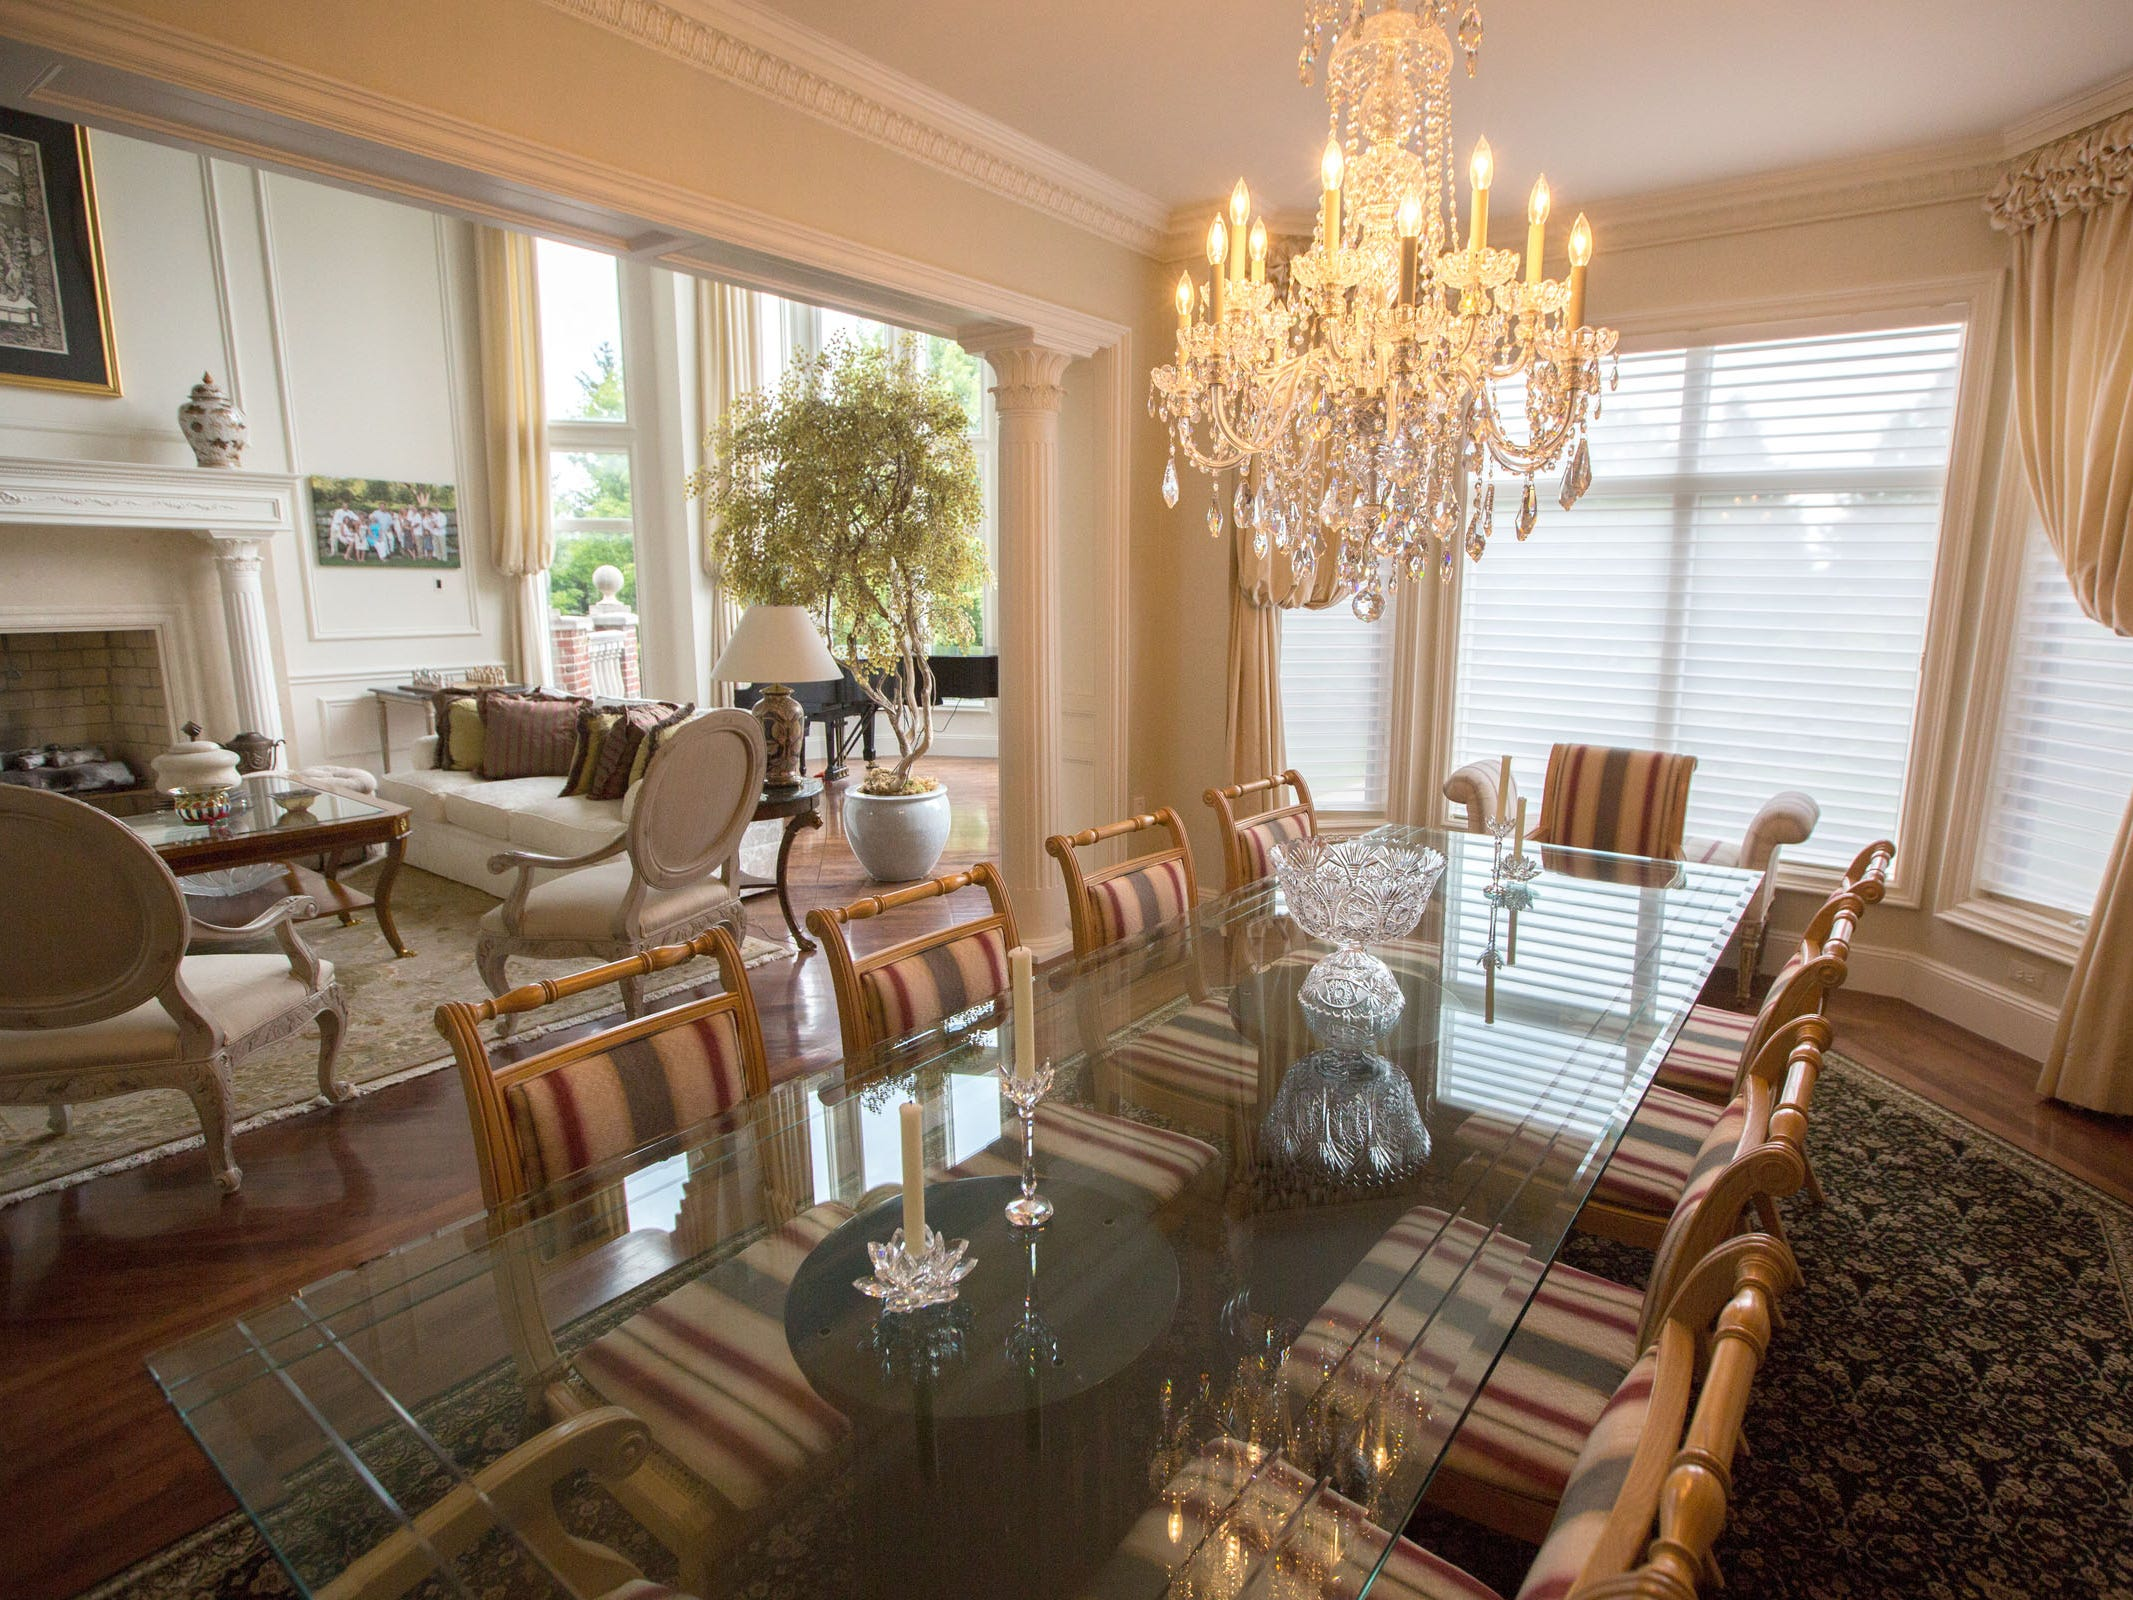 View from the formal dining room into the living room. The wood floors are cherry.